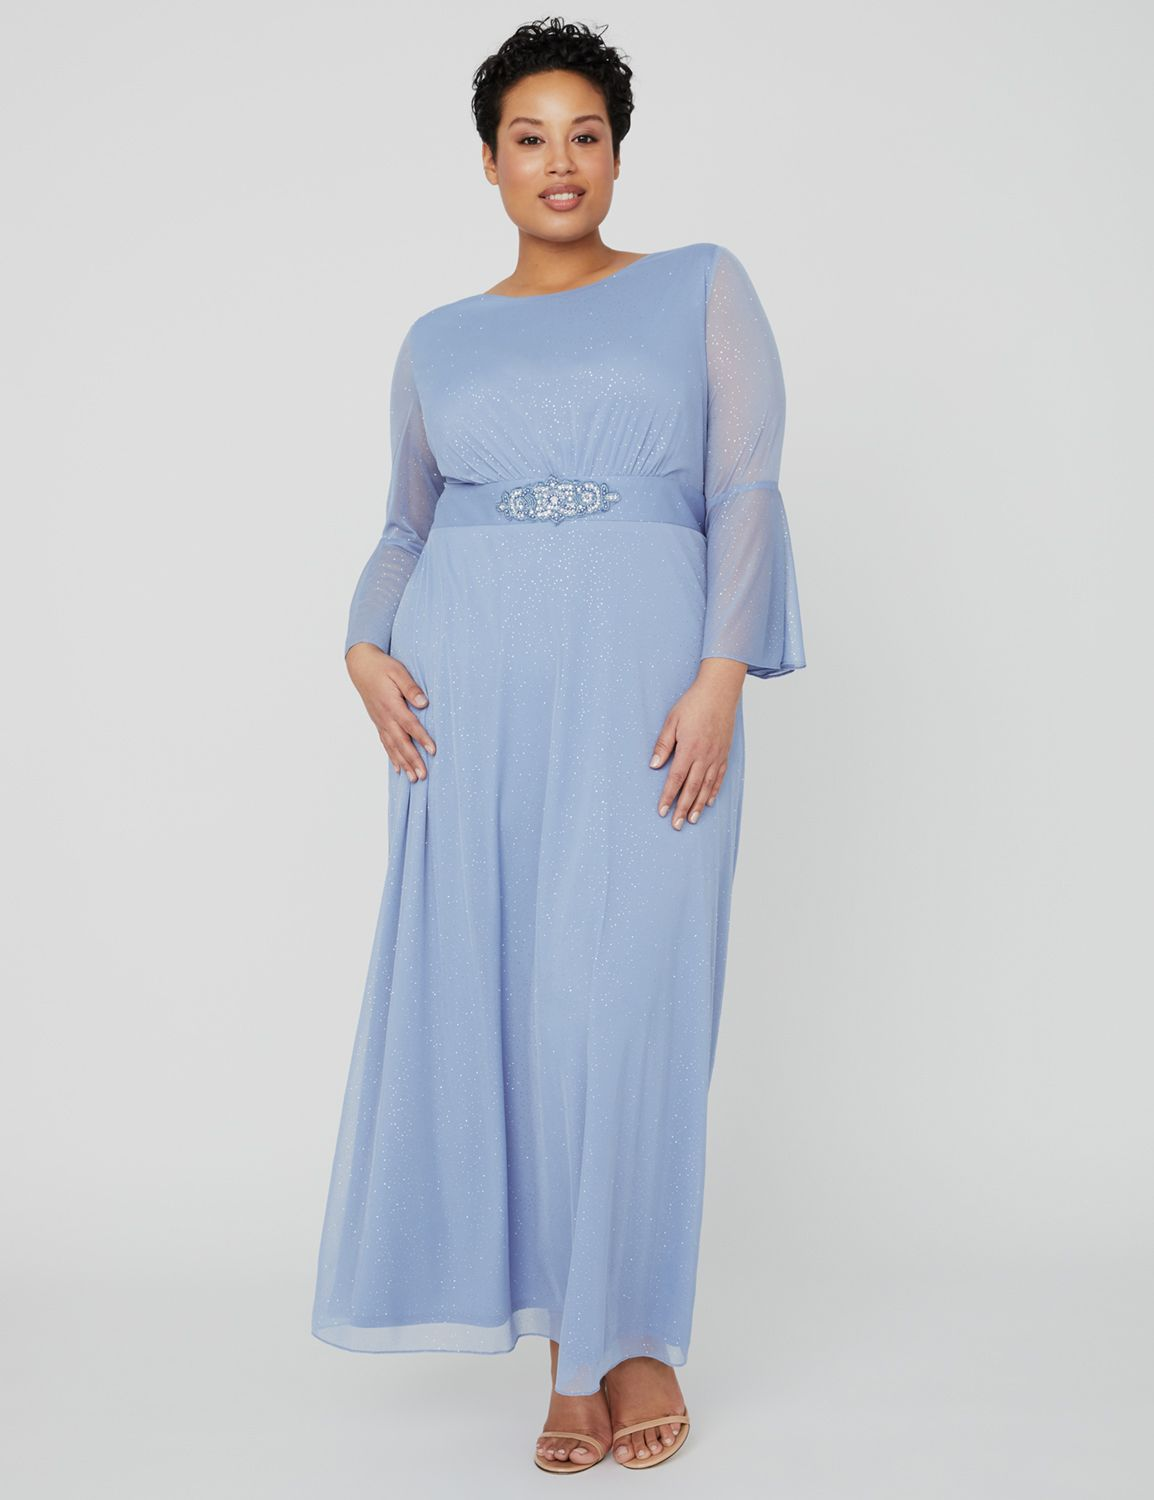 Twilight Sky Gown 1090991 Empire Waist Dress with Wai MP-300099843